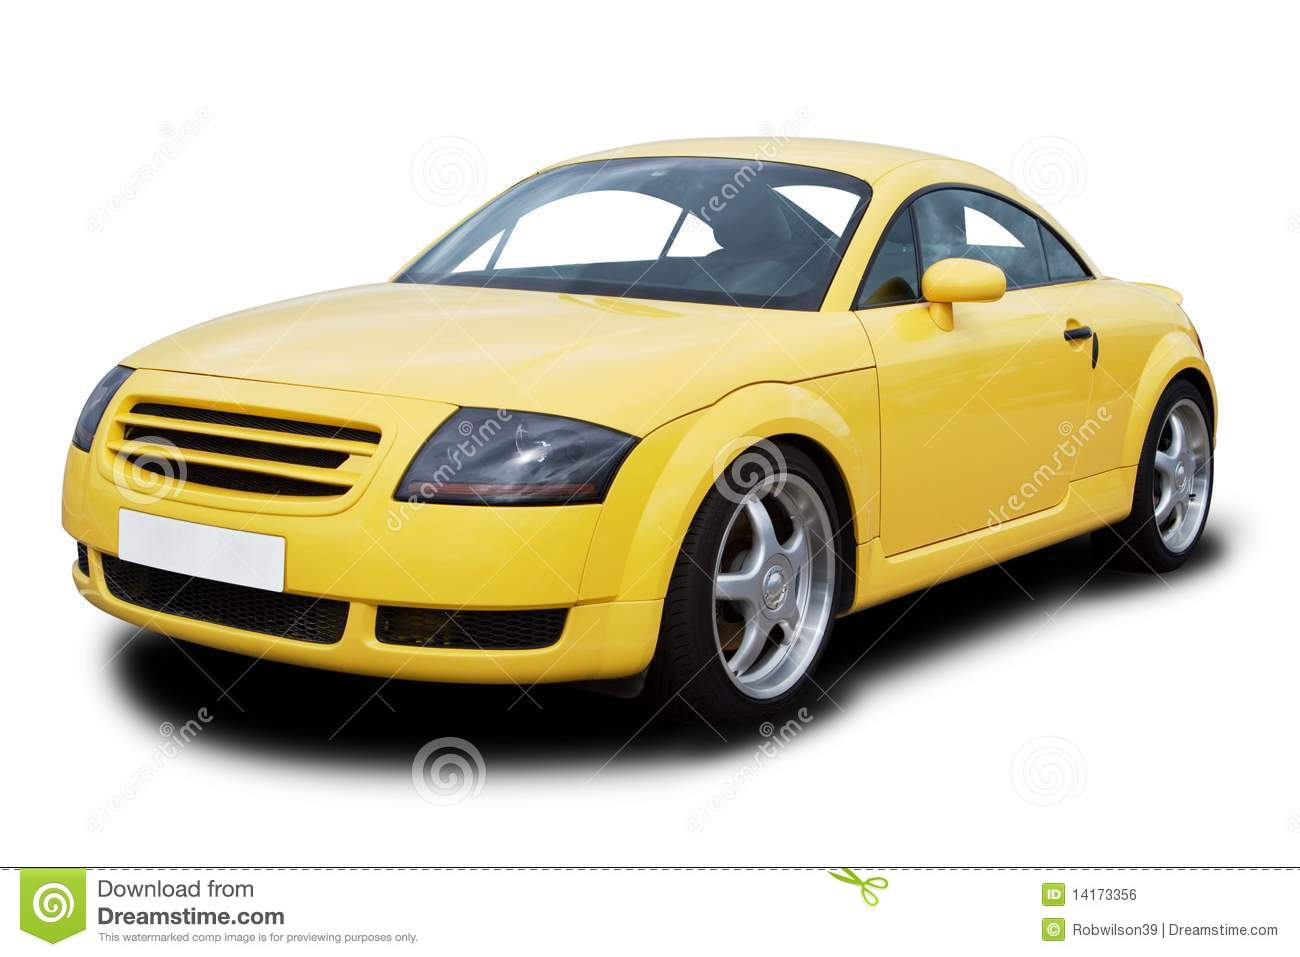 vehicle yellow sports car - photo #12